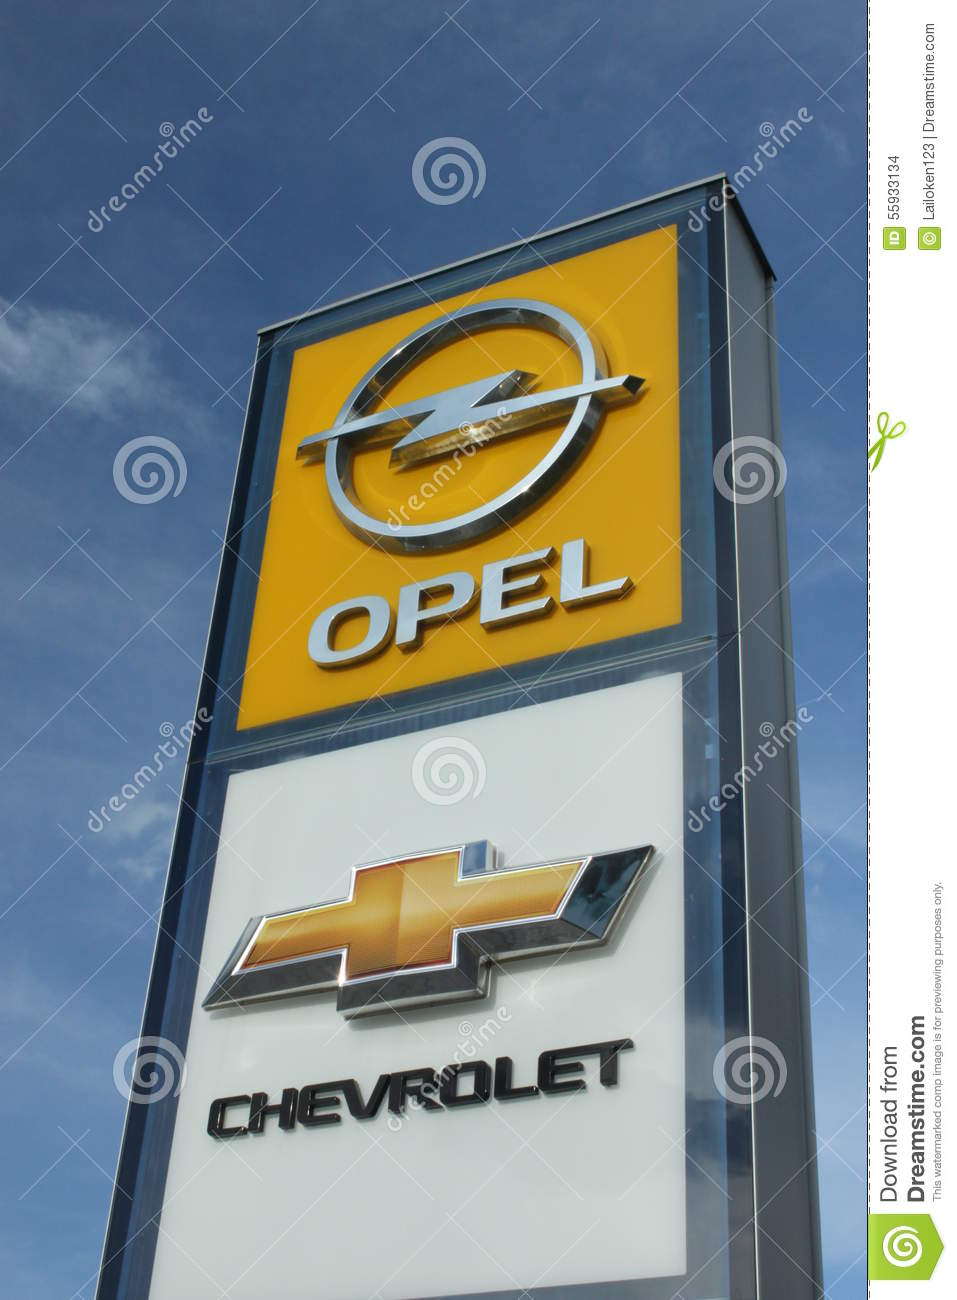 opel and chevrolet pylon editorial stock image image of both 55933134. Black Bedroom Furniture Sets. Home Design Ideas